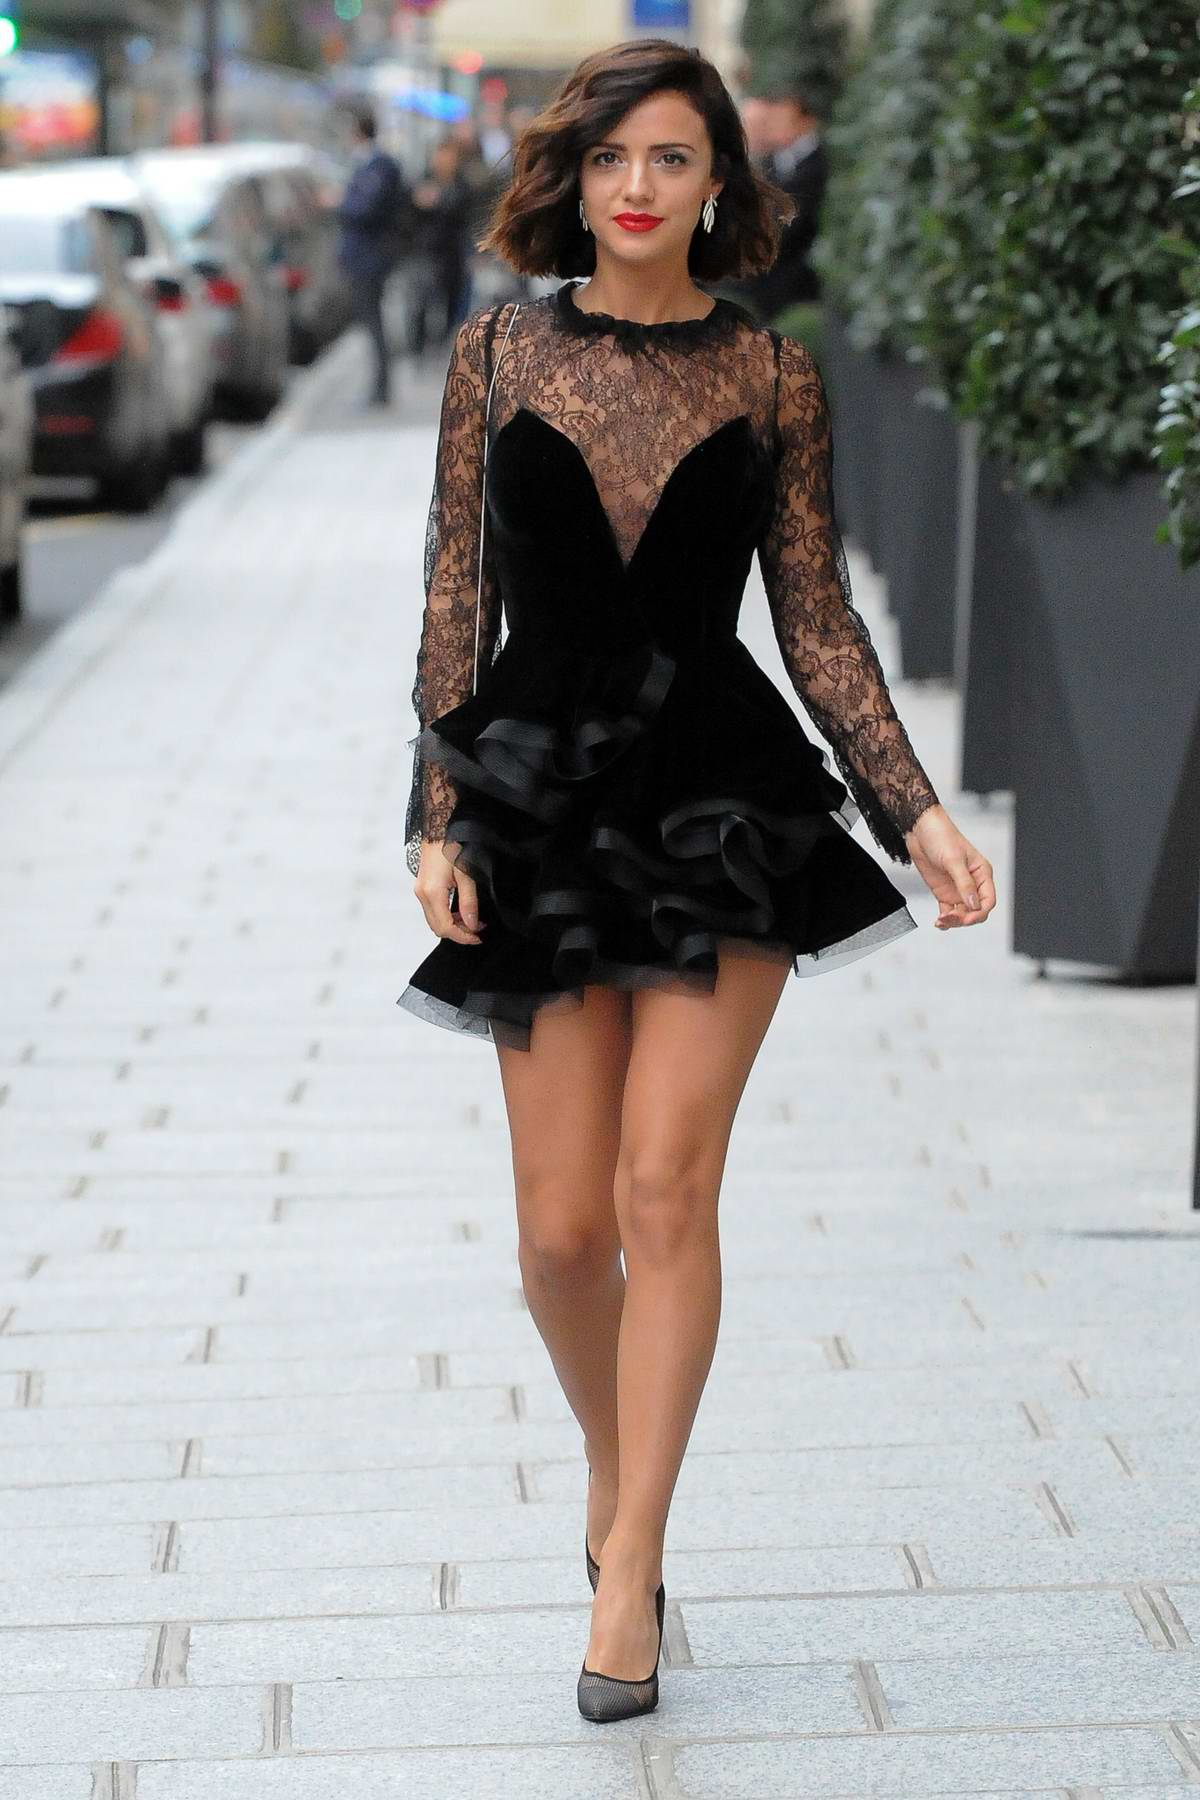 Lucy Mecklenburgh steps out in a short black dress during Paris Fashion Week in Paris, Los Angeles